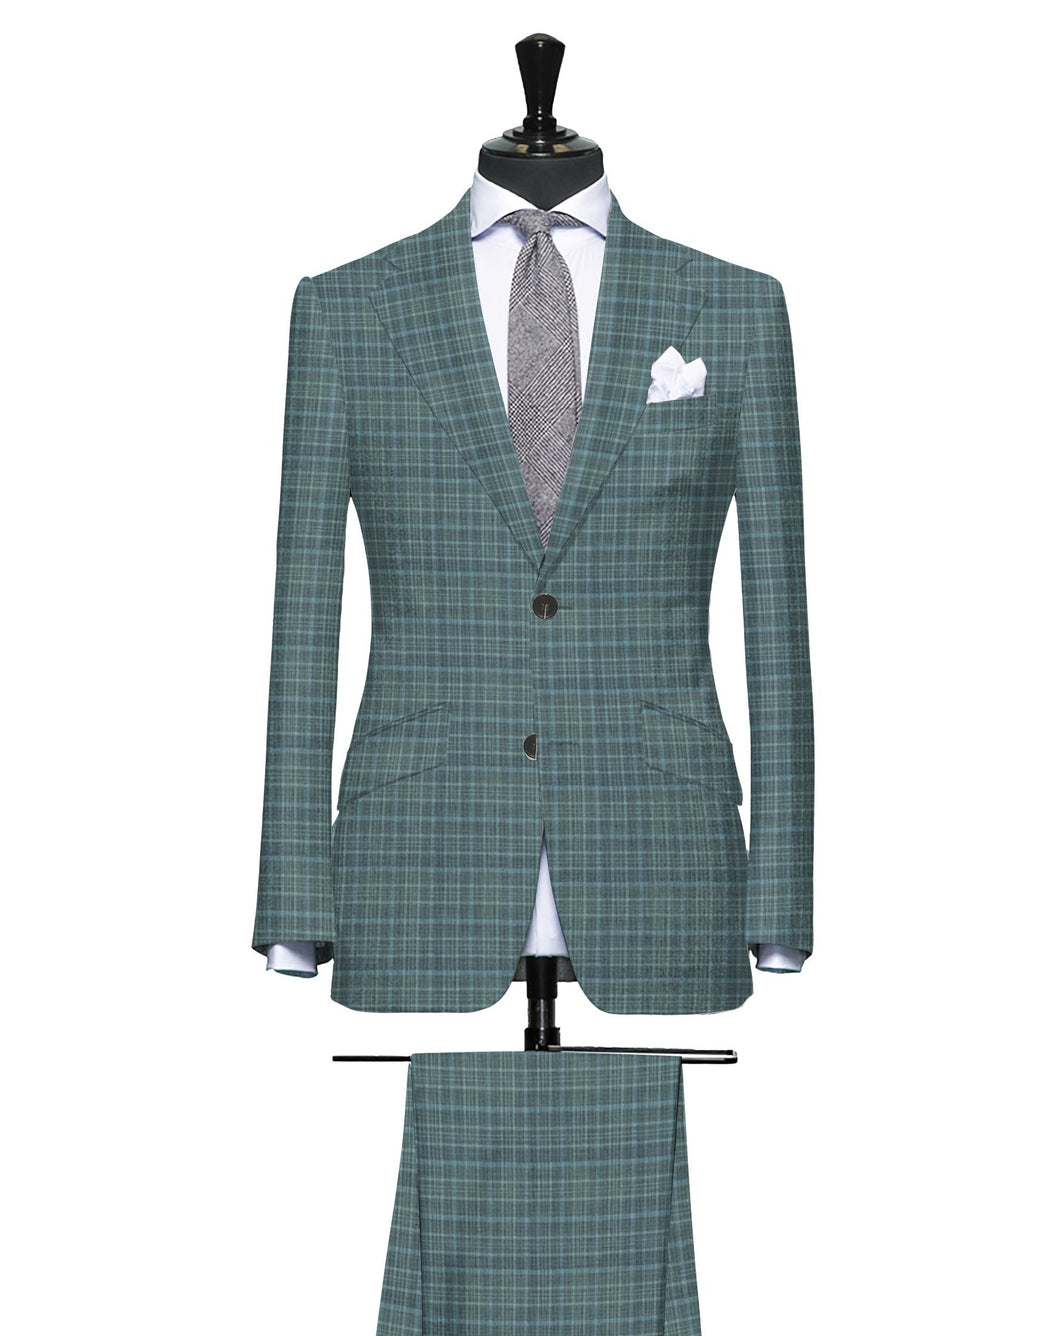 Sartorial Green with Light Blue Pattern, Super 160, Linen Silk Wool Blend